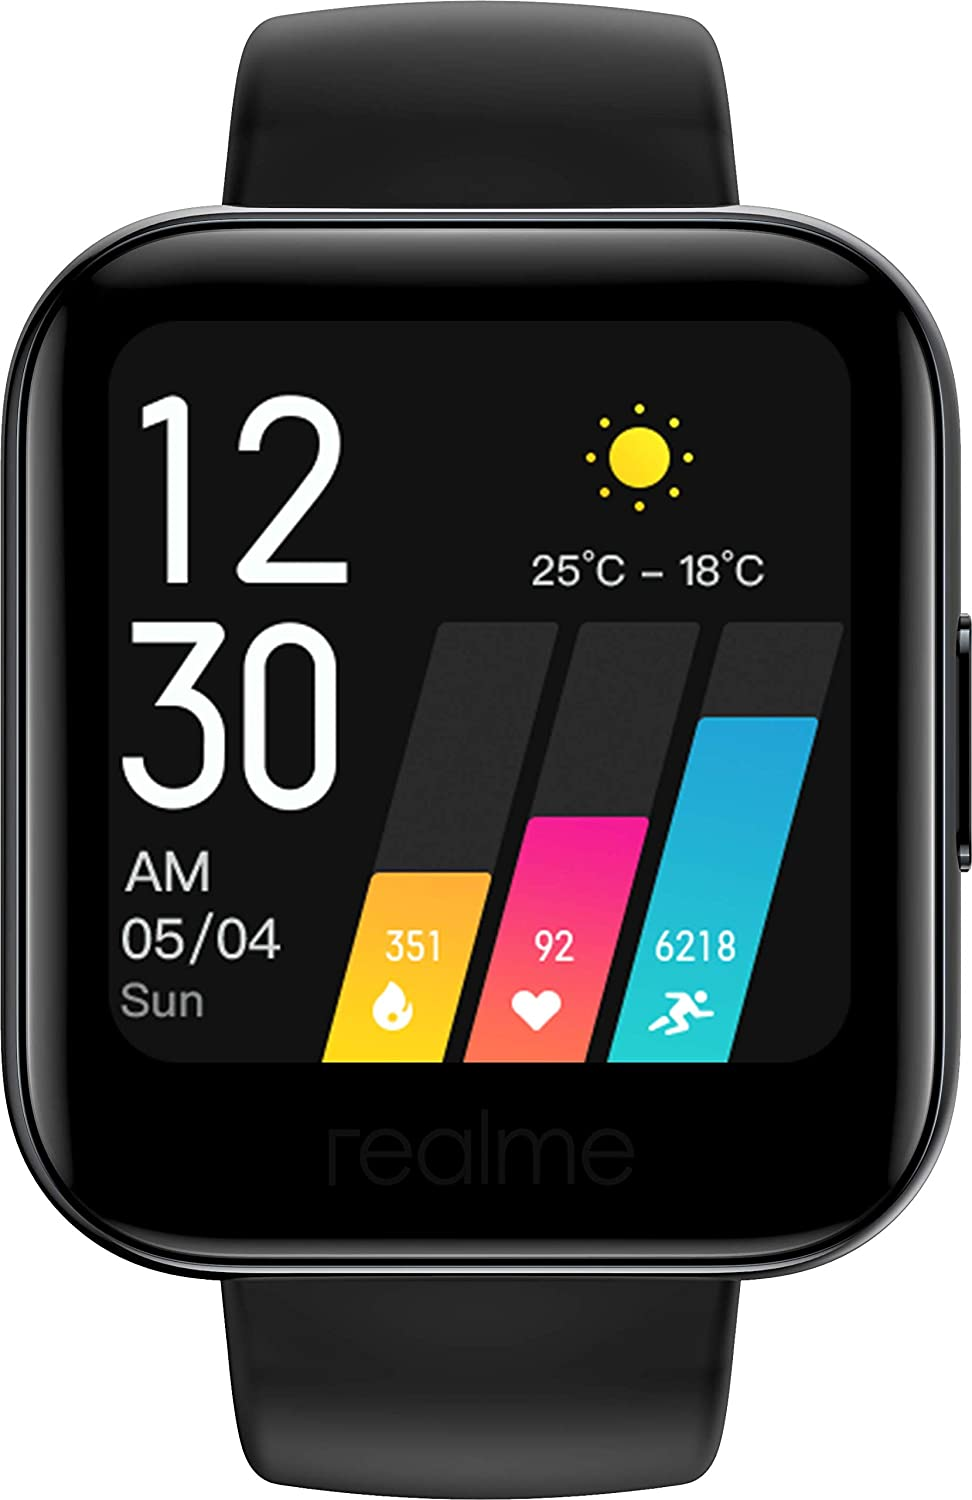 """realme Fashion Watch 1.4"""" Large HD Color Display, Full Touch Screen, SpO2, Continuous Heart Rate Monitor, Black, Free Size (RMA161)"""